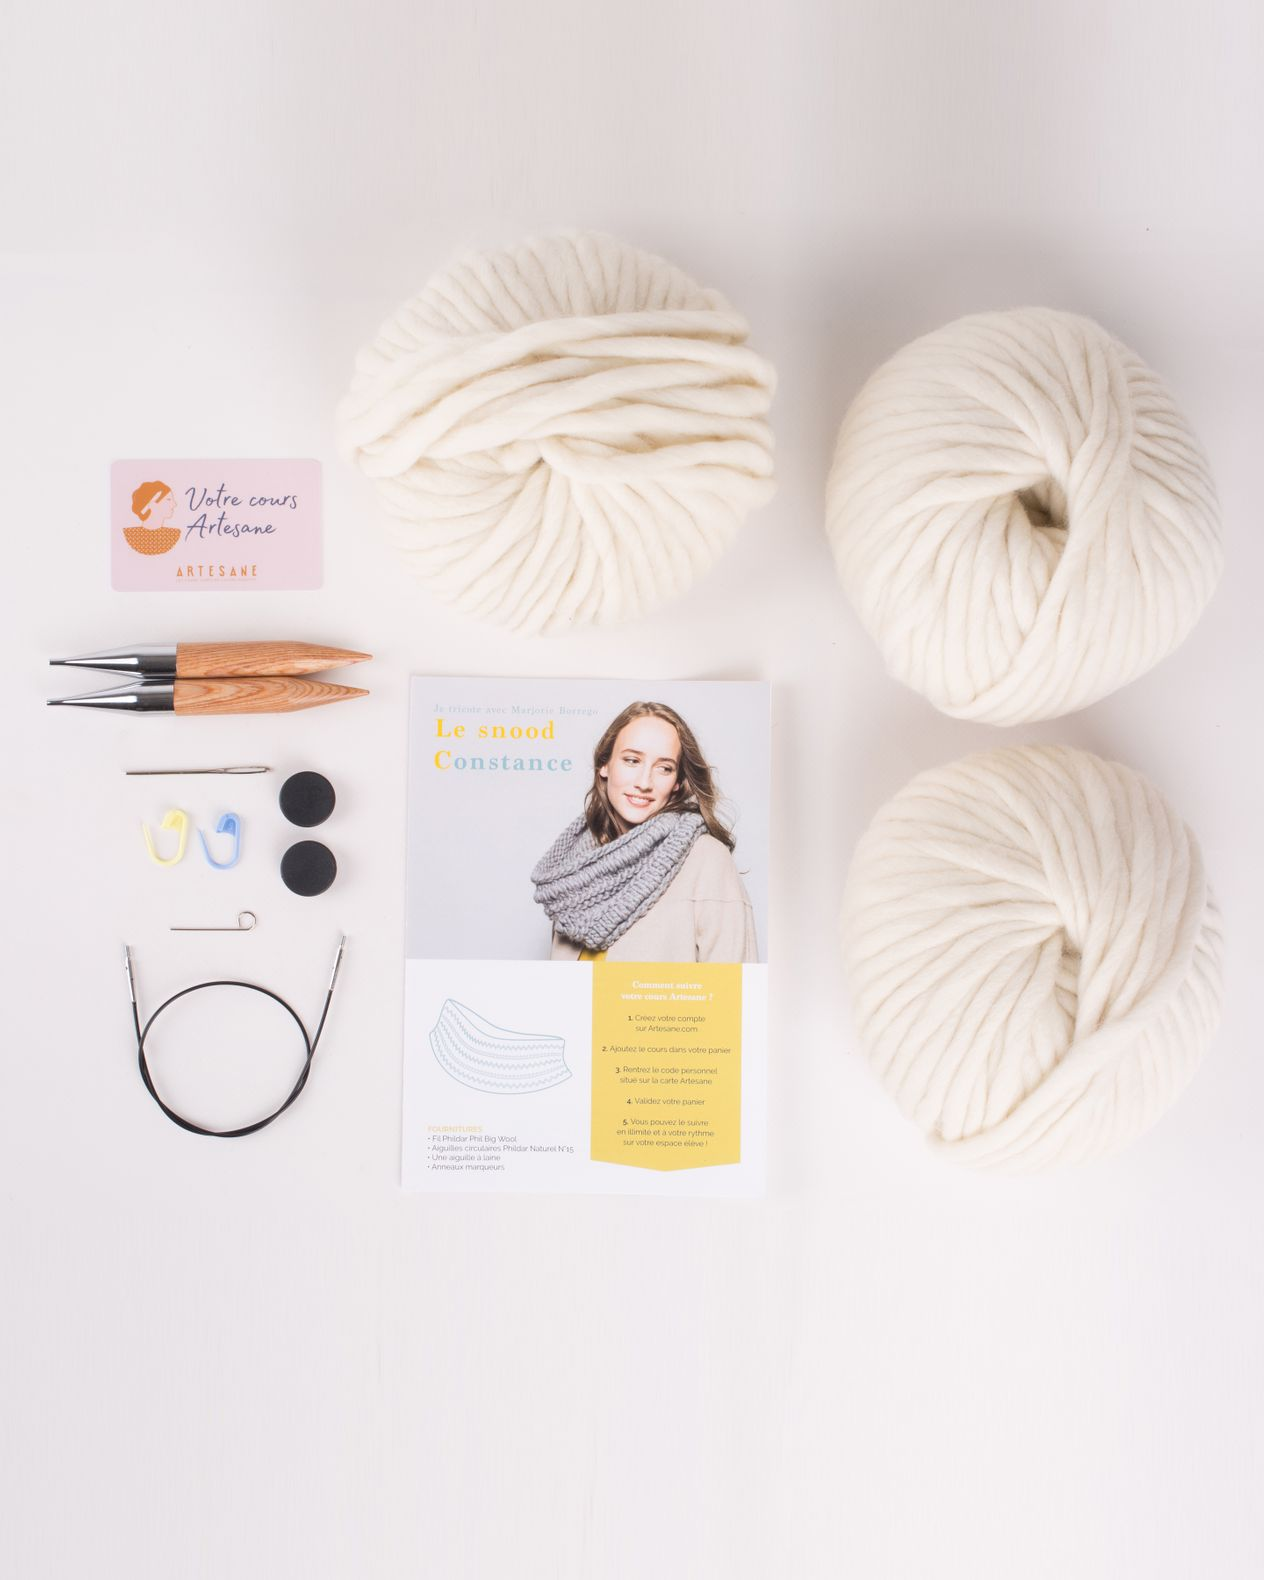 Kit Artesane - Le snood Constance